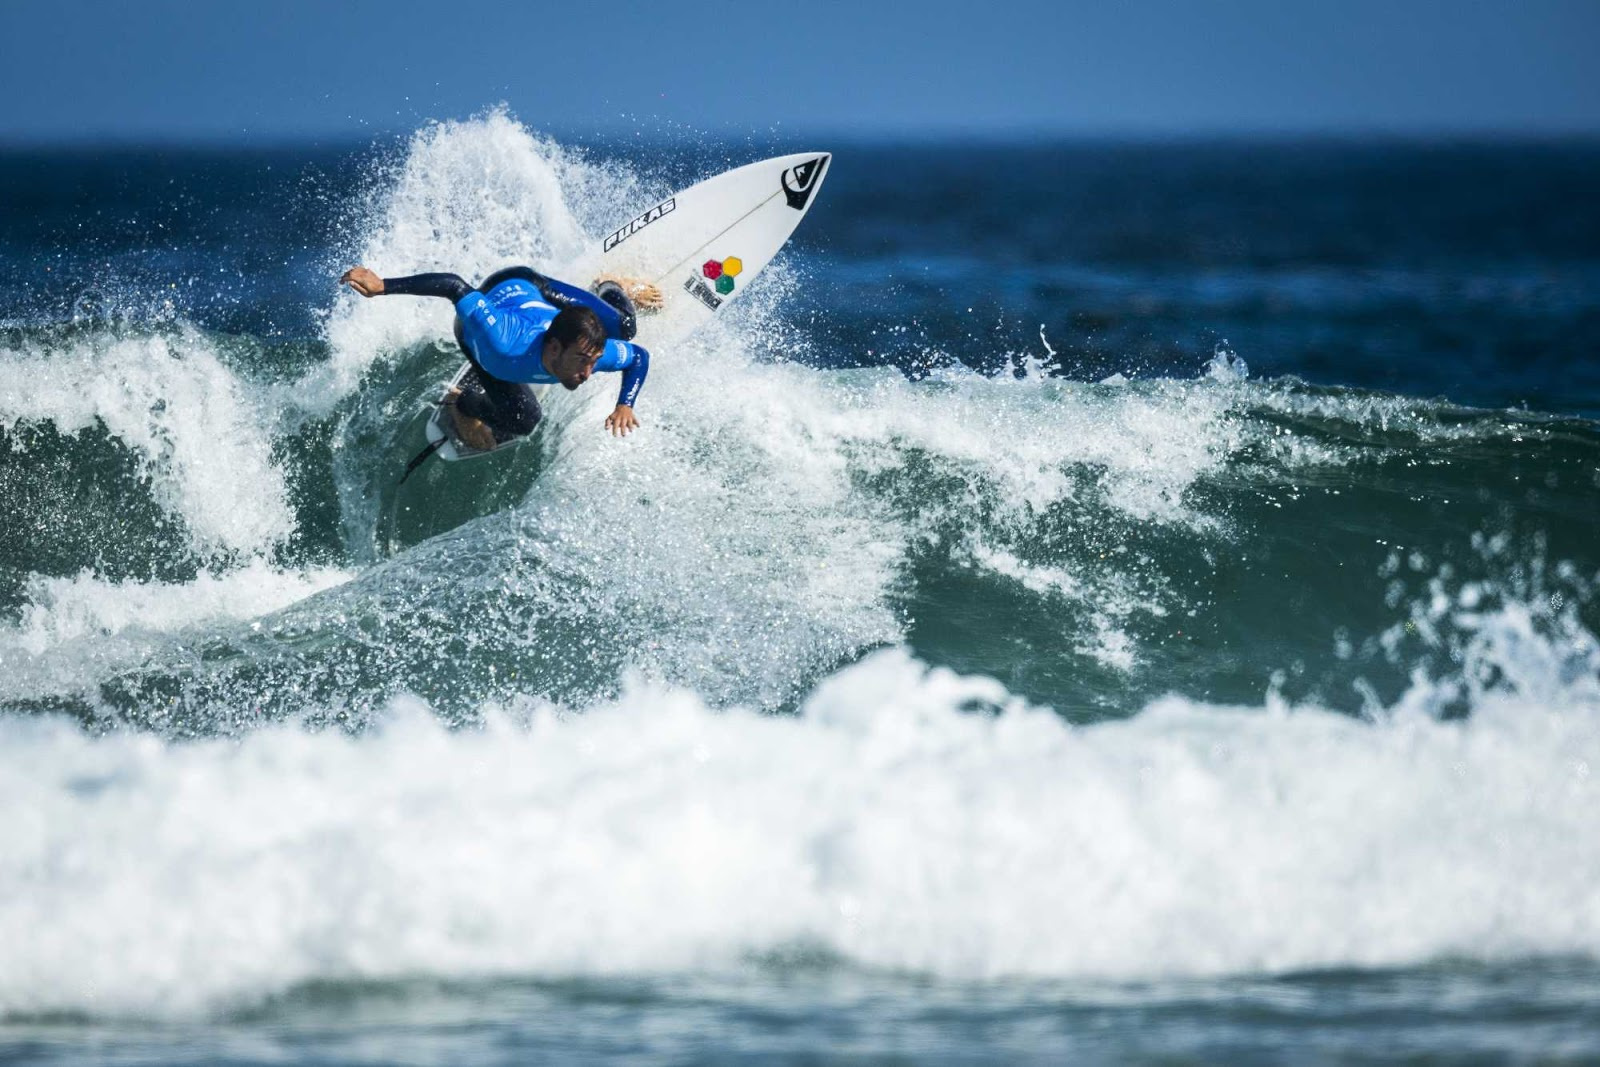 Pull Bear Pantin Classic Galicia Pro 2018 Highlights Men s Event Cuts Field Down to 16